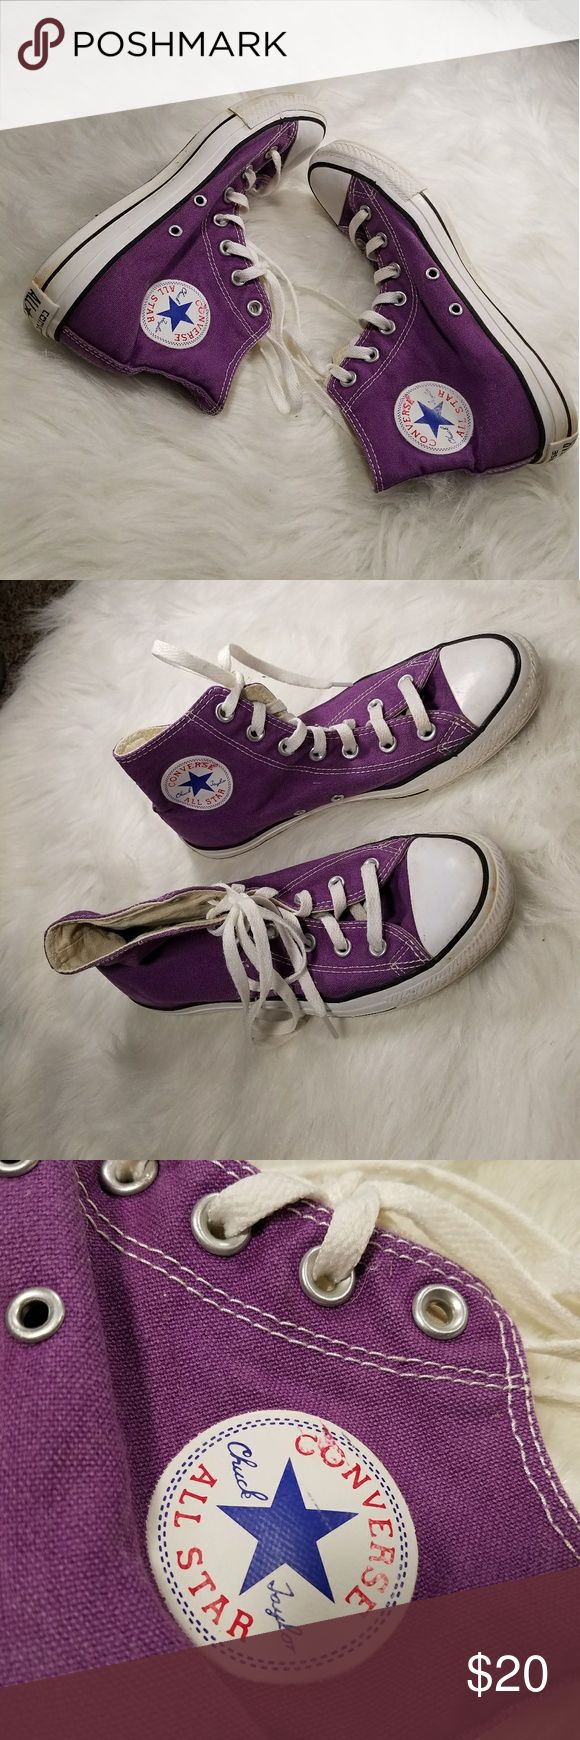 Converse high tops purple Converse high tops purple Converse Shoes Sneakers